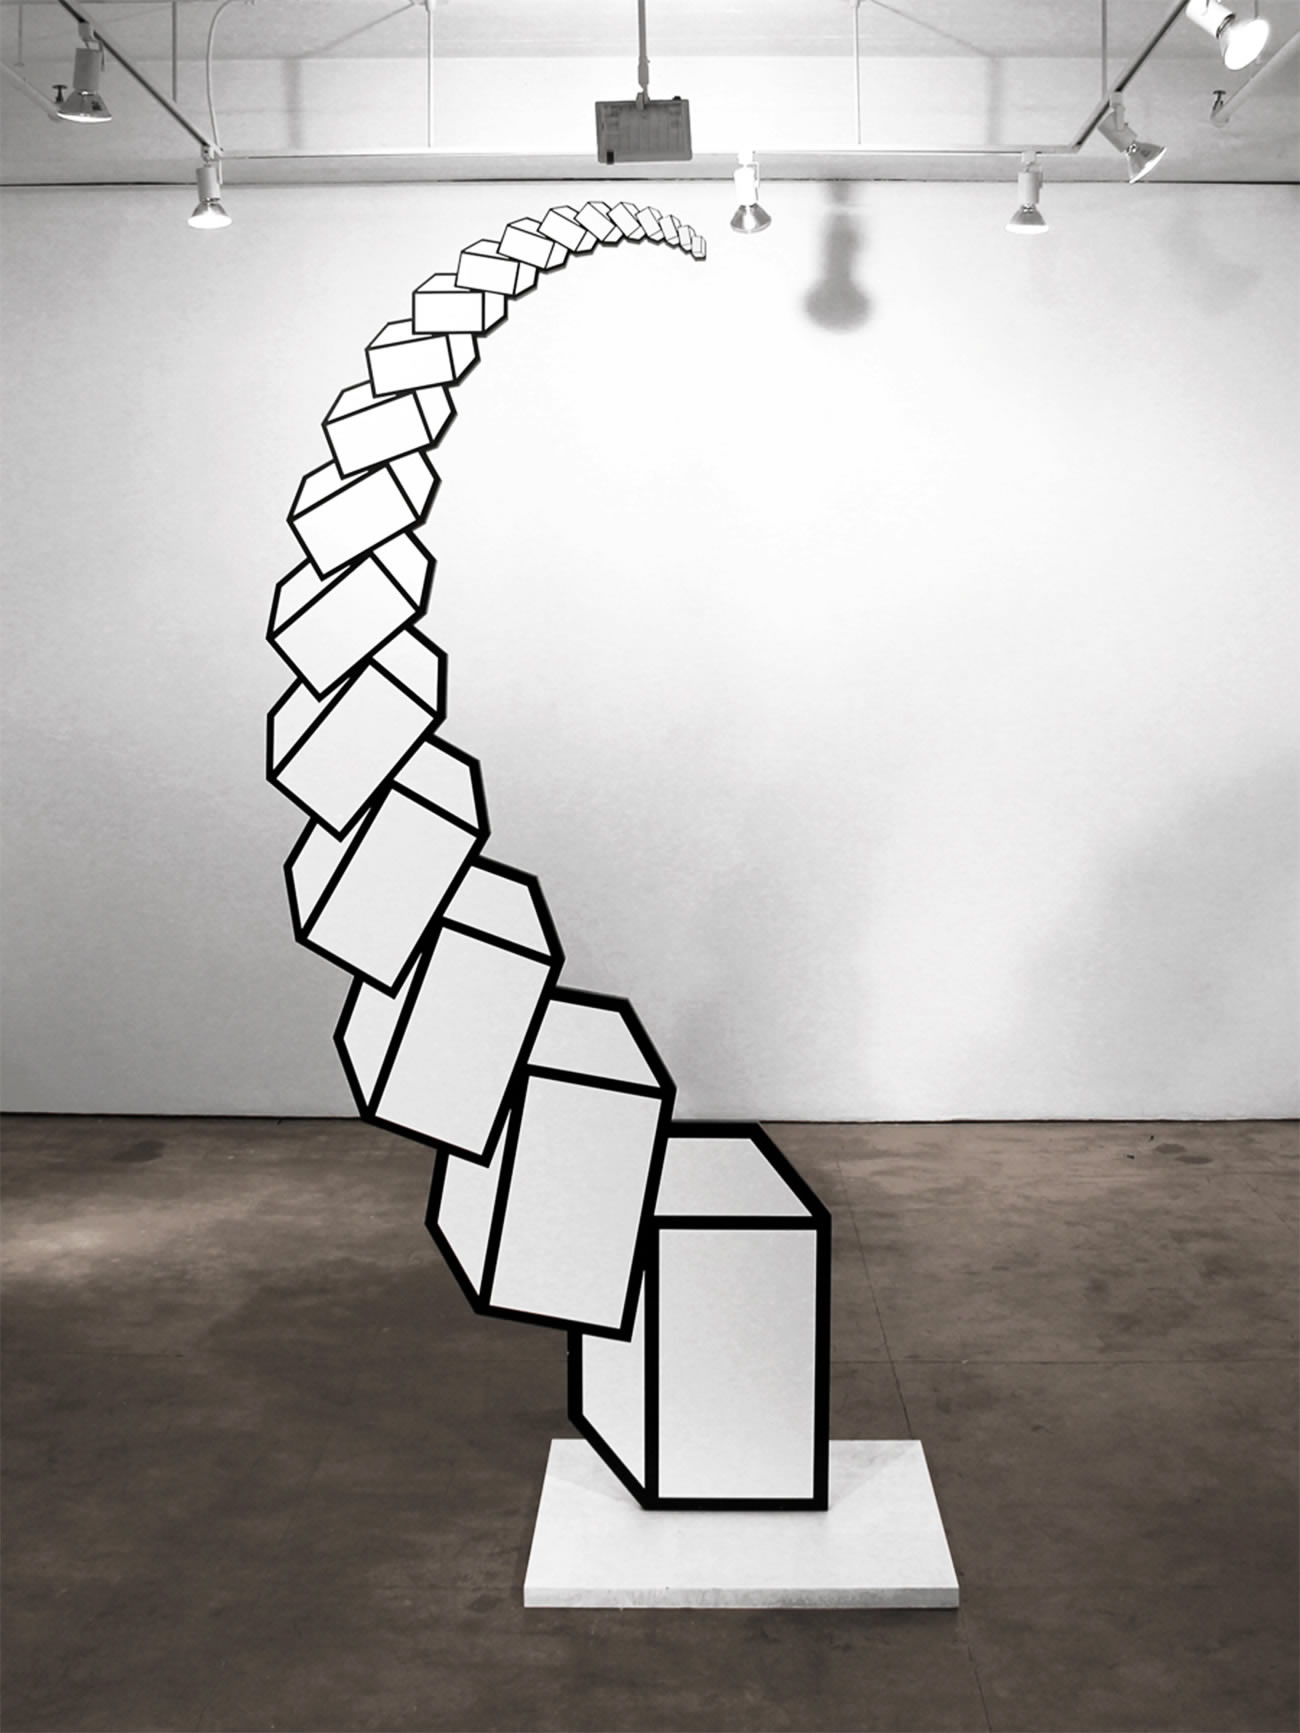 geometric 3d boxes piled up in gallery, by Aakash Nihalani